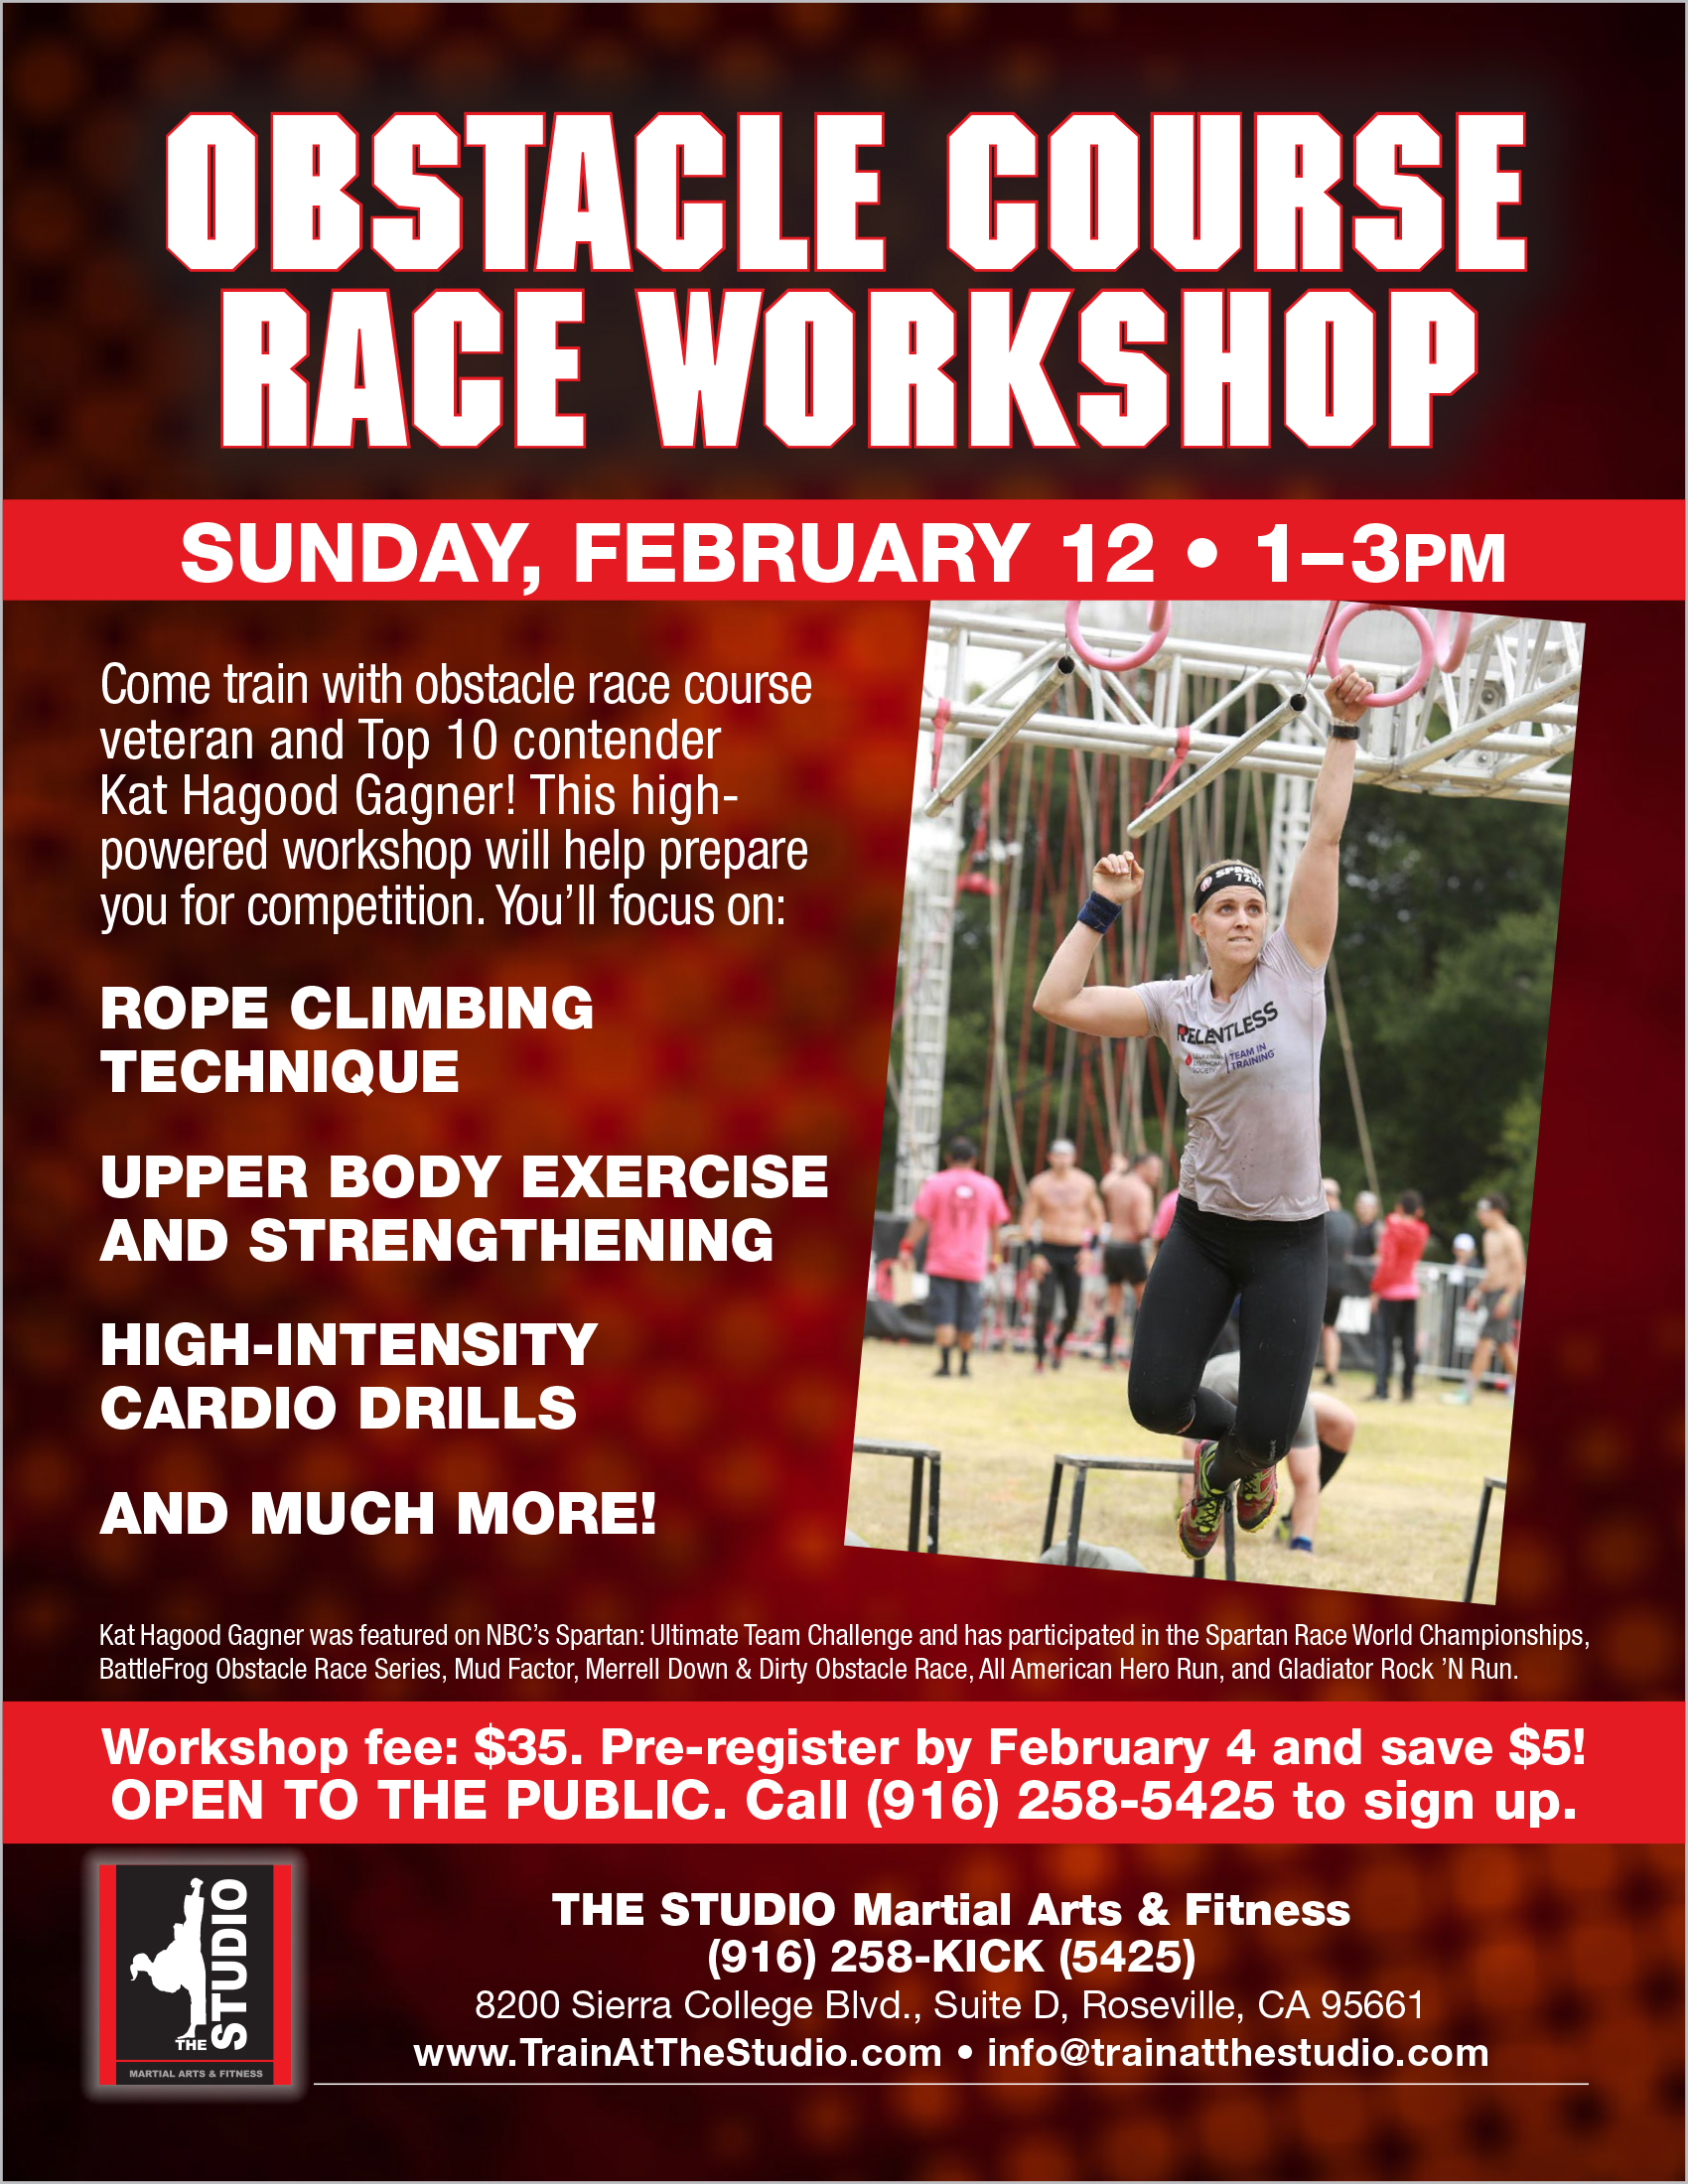 Feb 12 Obstacle Course Race Workshop The Studio